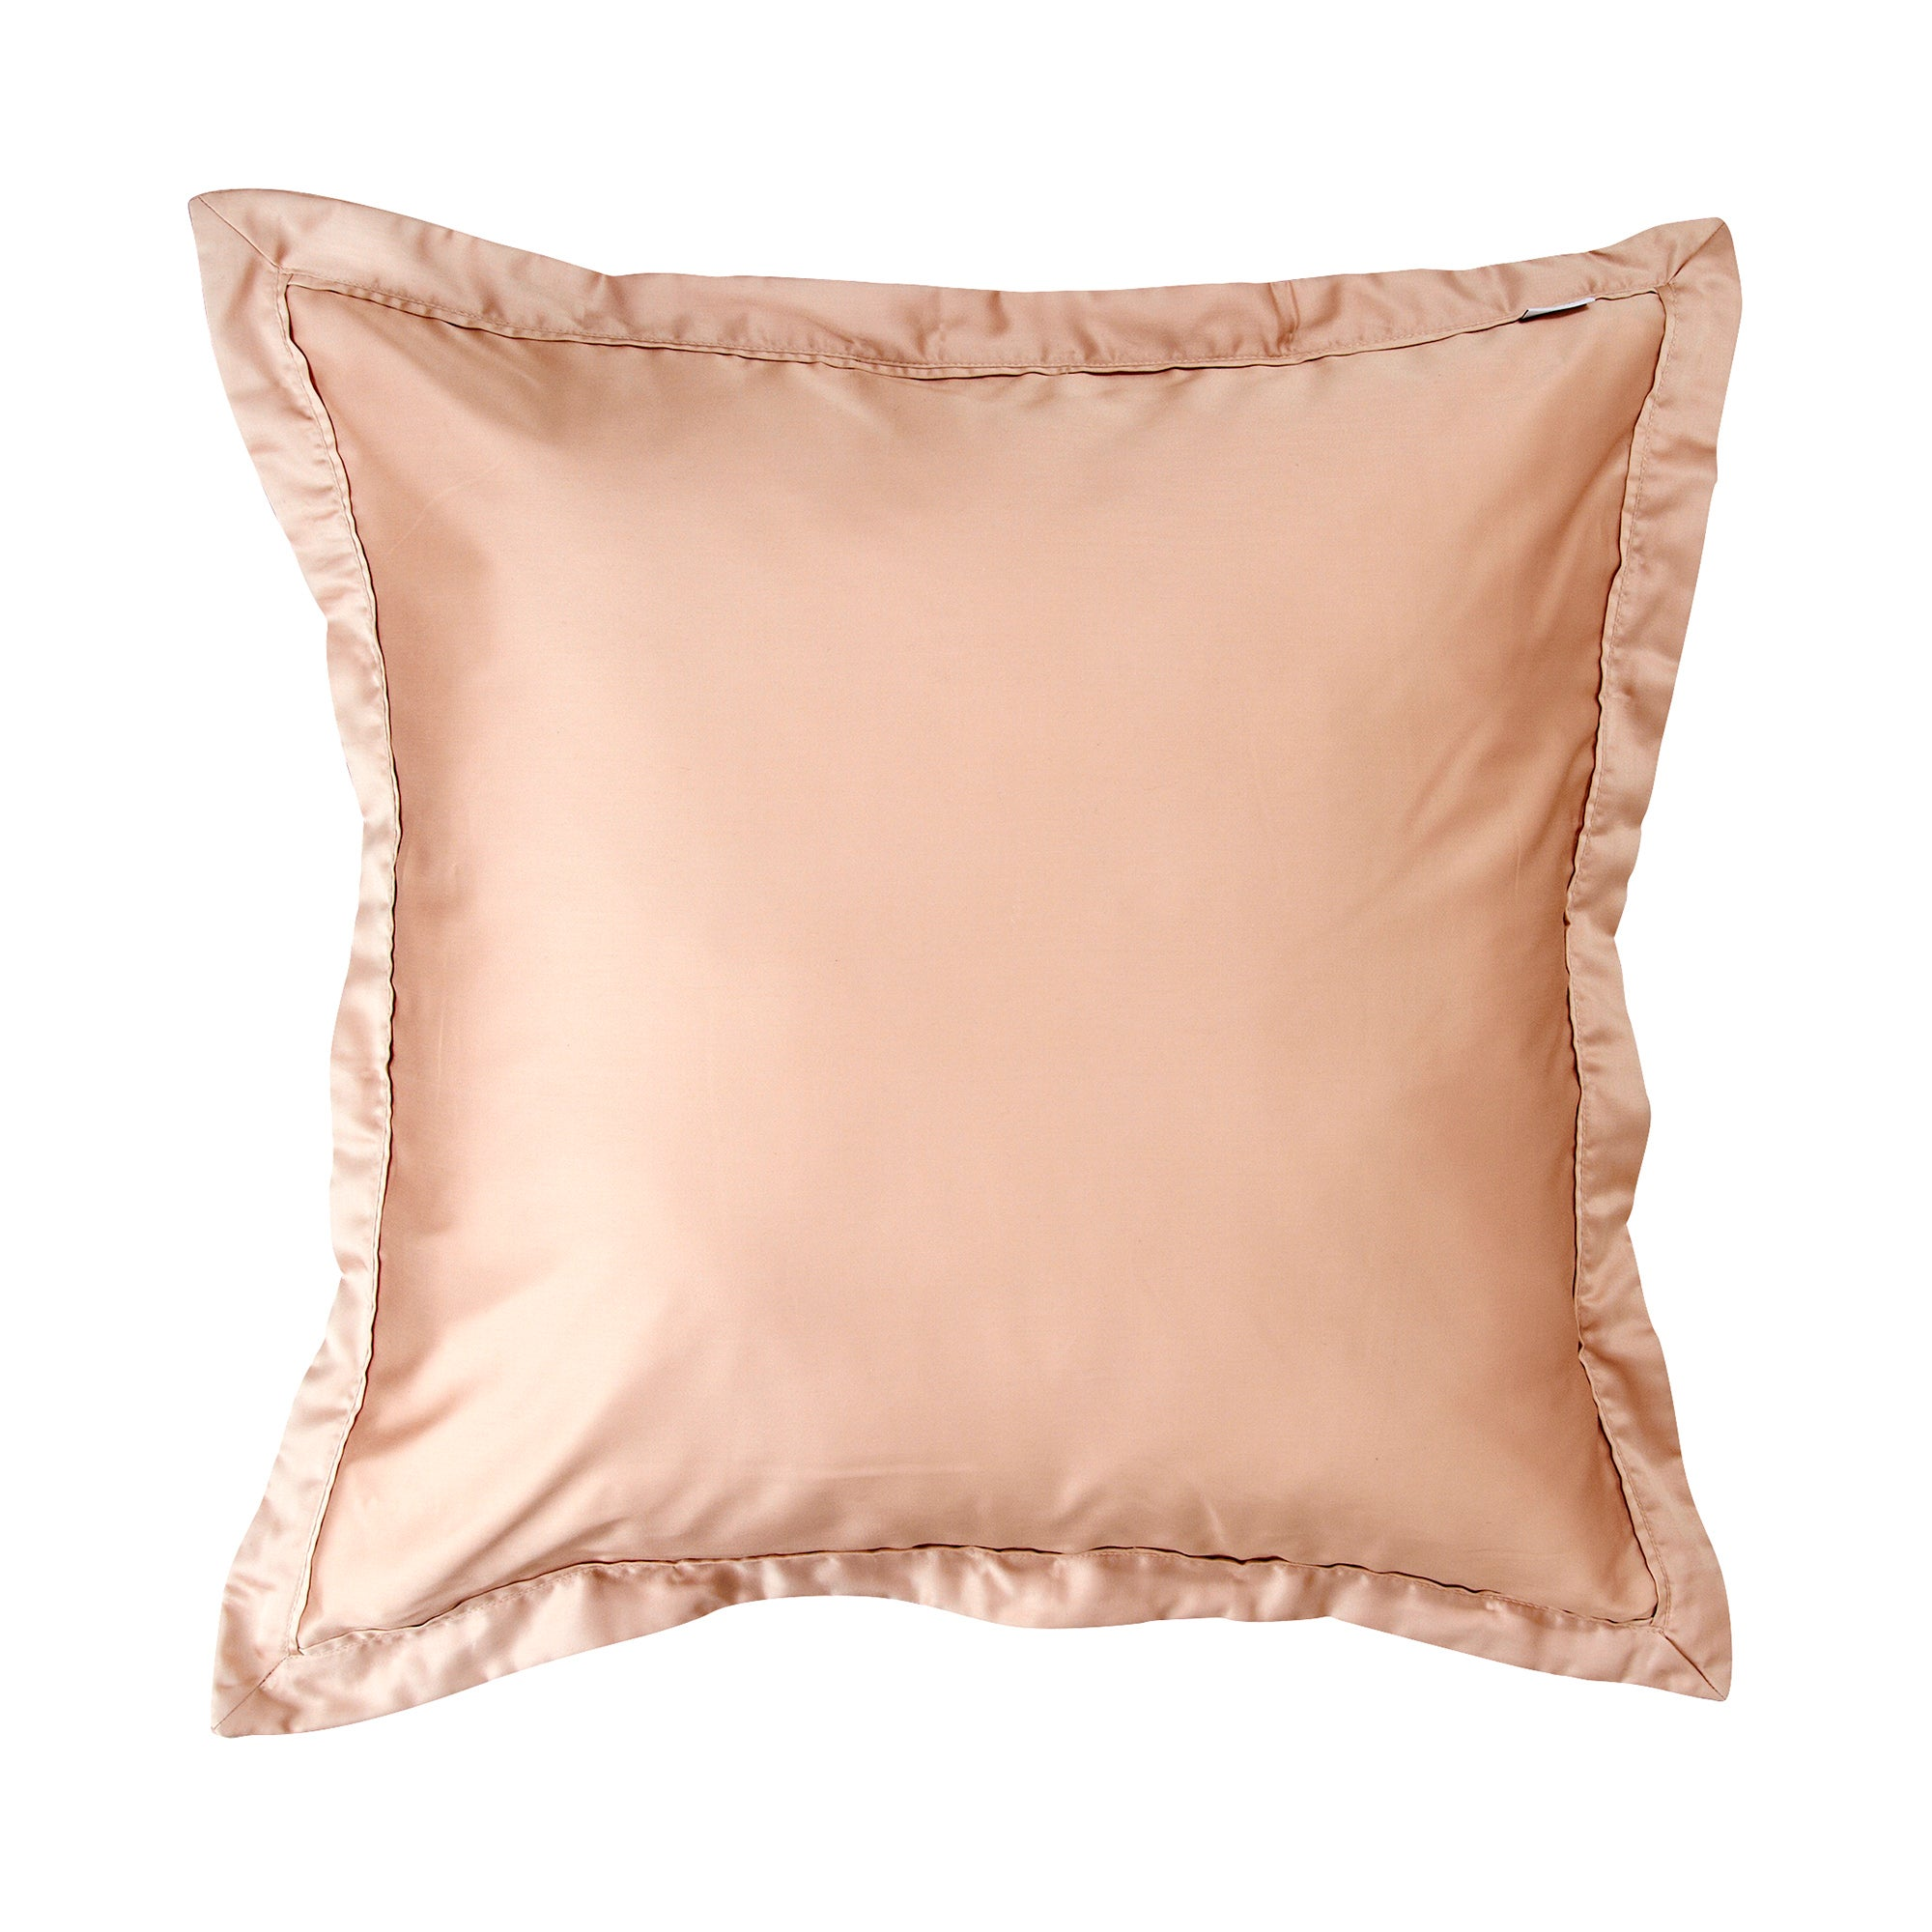 Dorma Camel 350 Thread Count Plain Dye Collection Continental Pillowcase